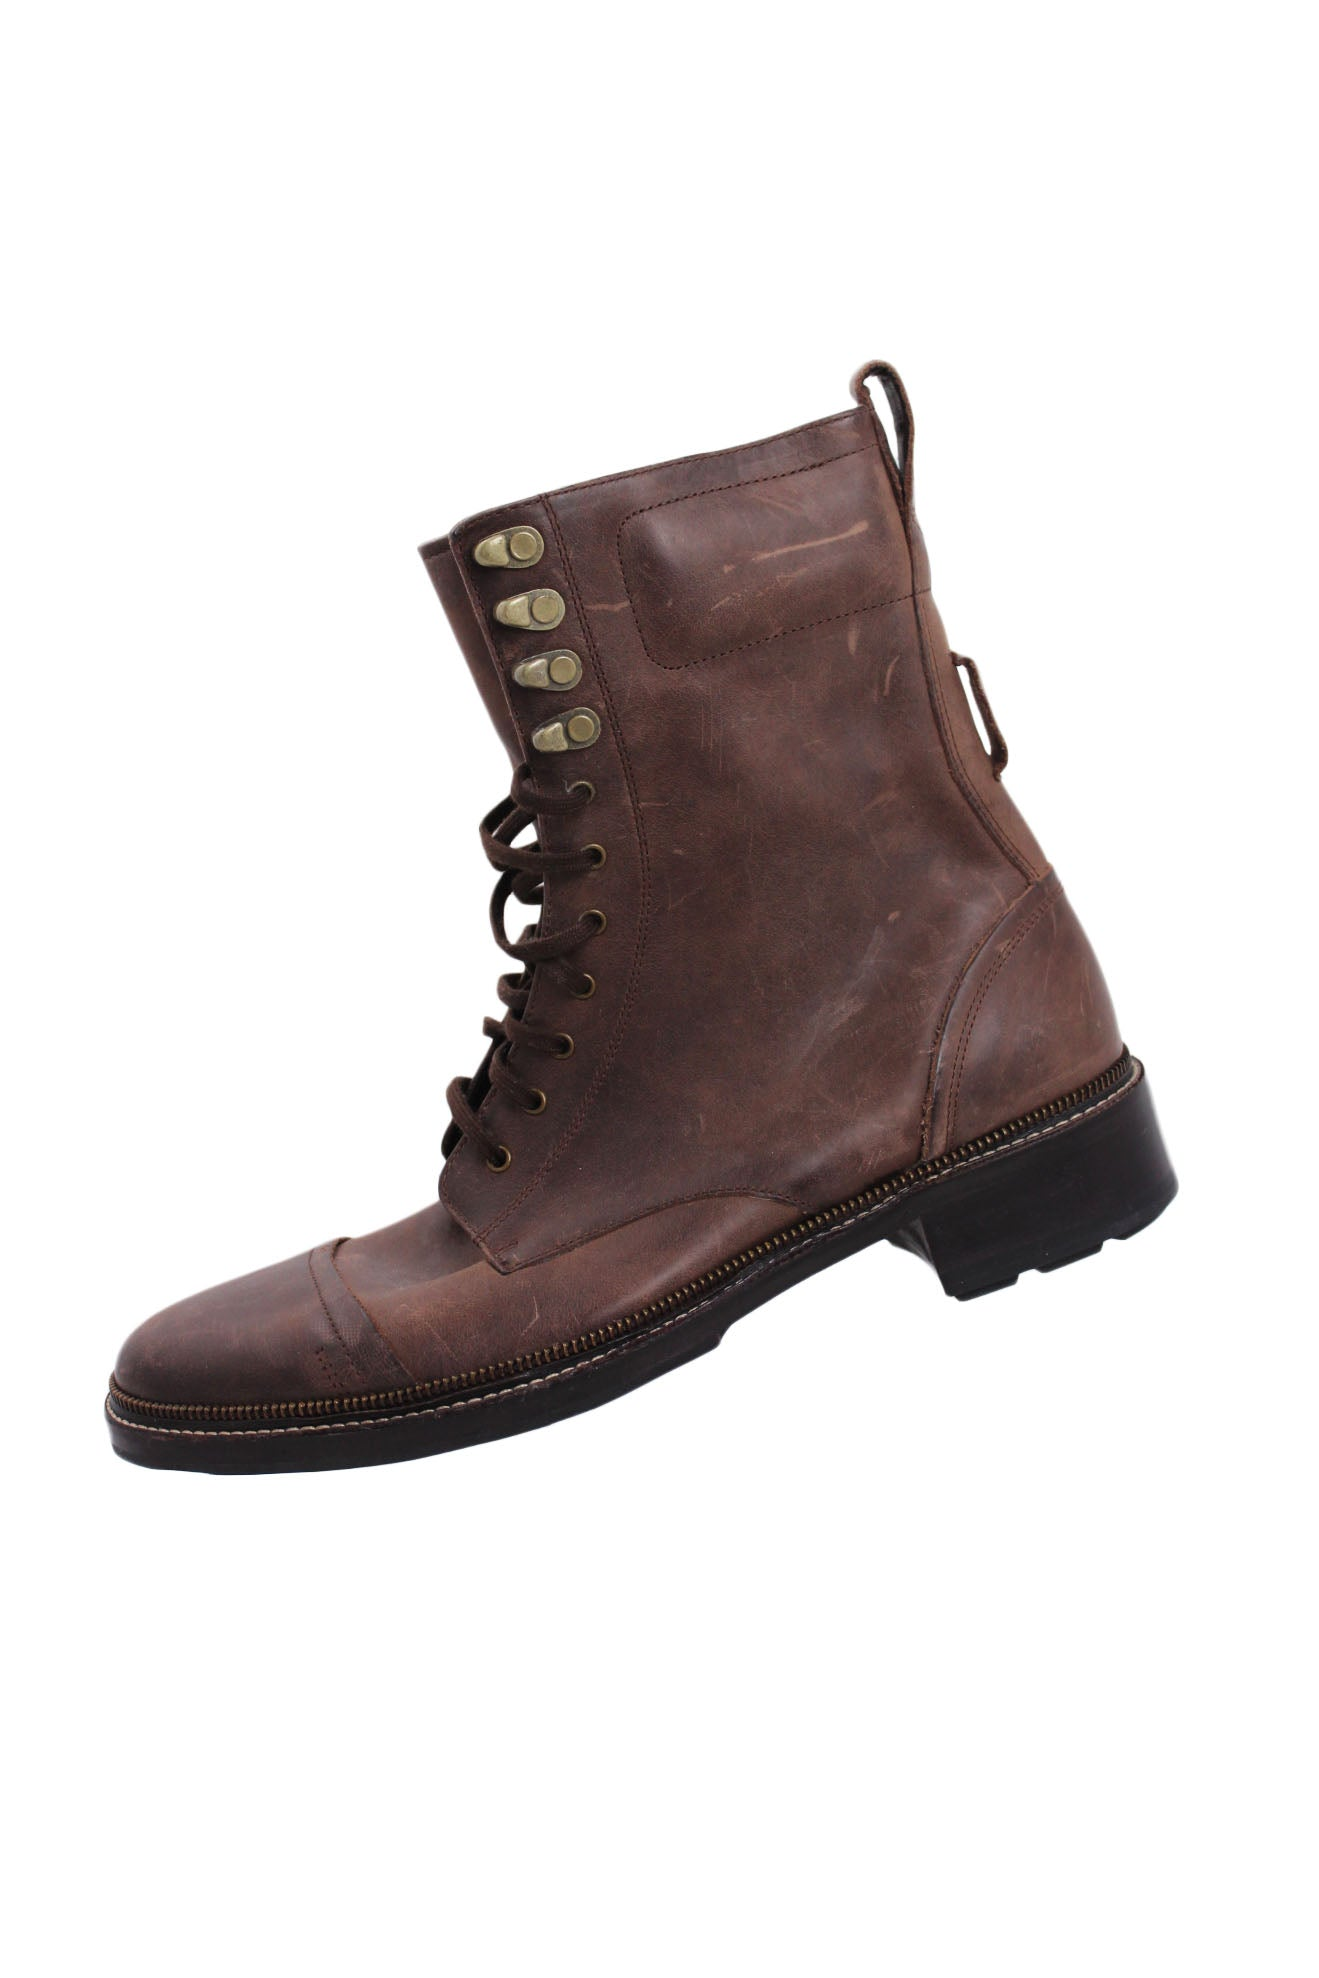 cole haan brown leather cap toe boots. features top flat lace closure, top stitched sole, and a heel measuring at ~ 2.5""